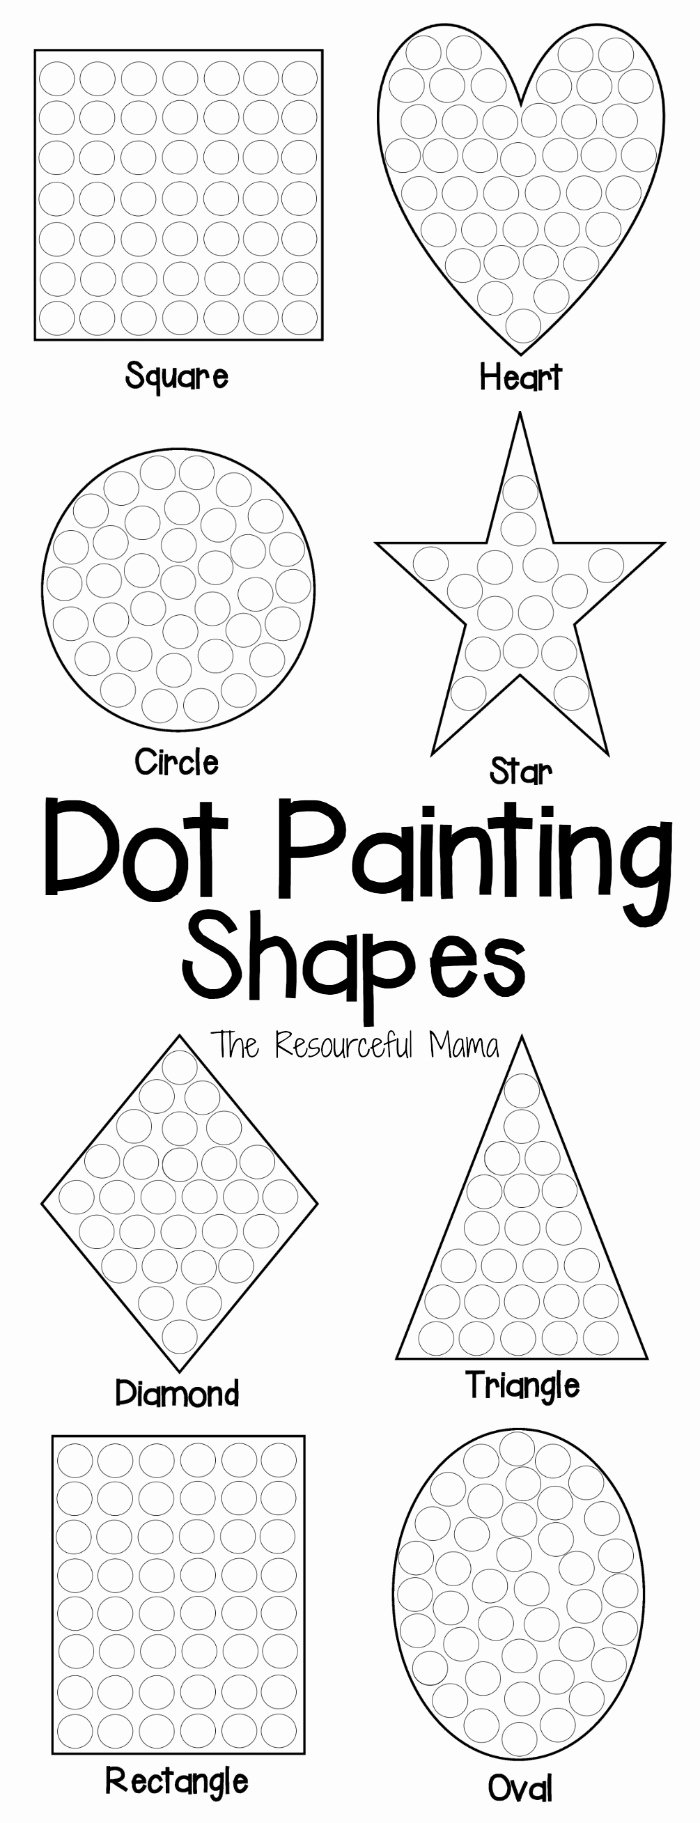 Dot to Dot Art Printables Fresh Shapes Dot Painting Free Printable the Resourceful Mama